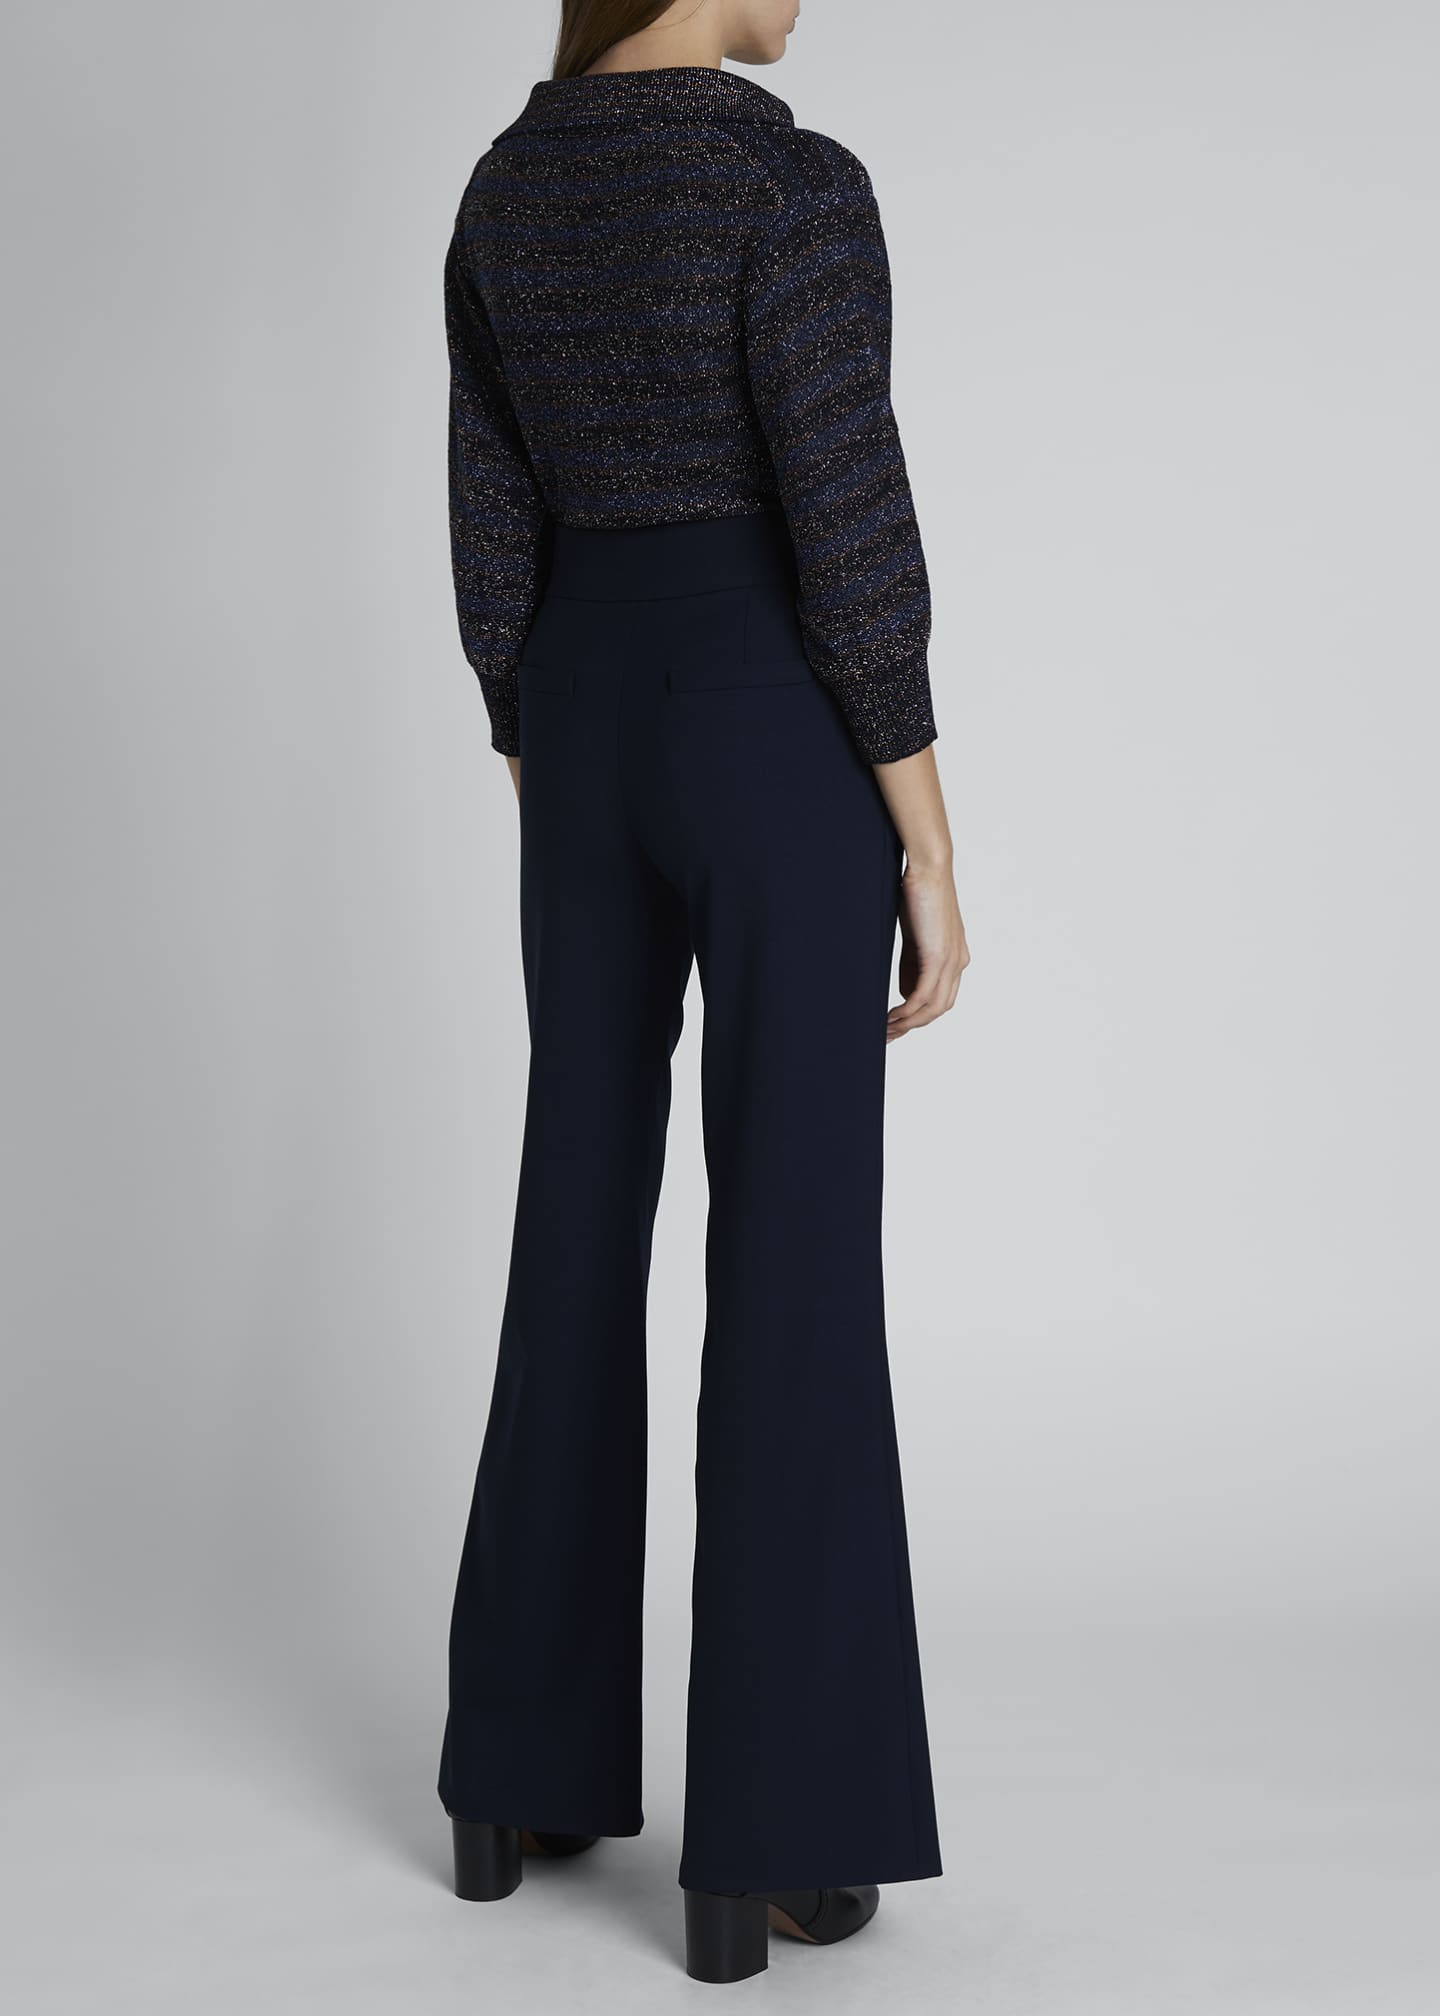 Image 2 of 3: High-Waist Flare Leg Sailor Trousers